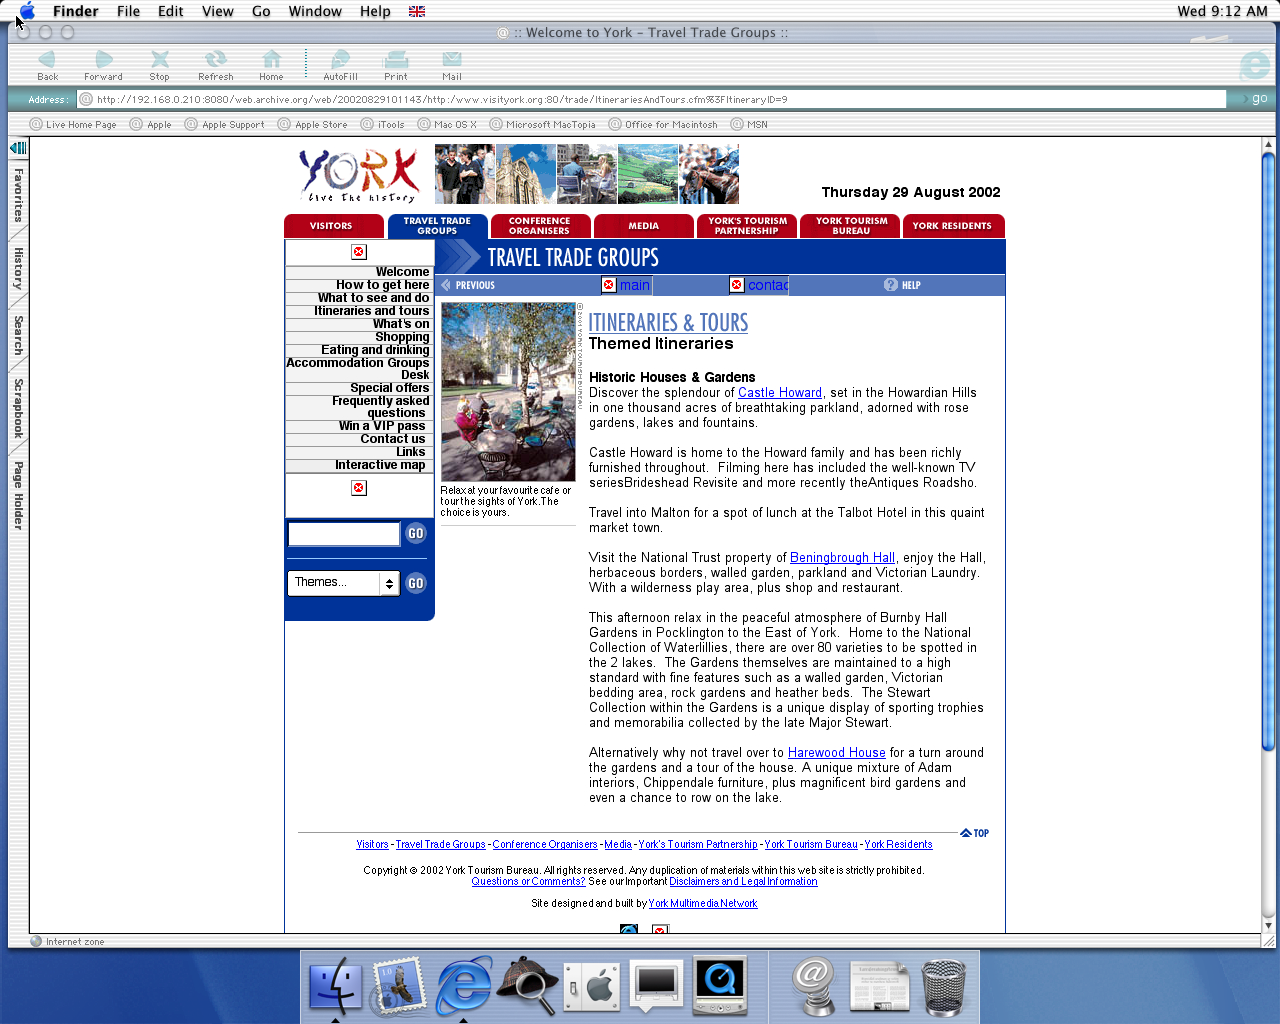 OS X 10.0 PPC with Microsoft Internet Explorer 5.1 for Mac Preview displaying a page from Visit York archived at August 29, 2002 at 10:11:43